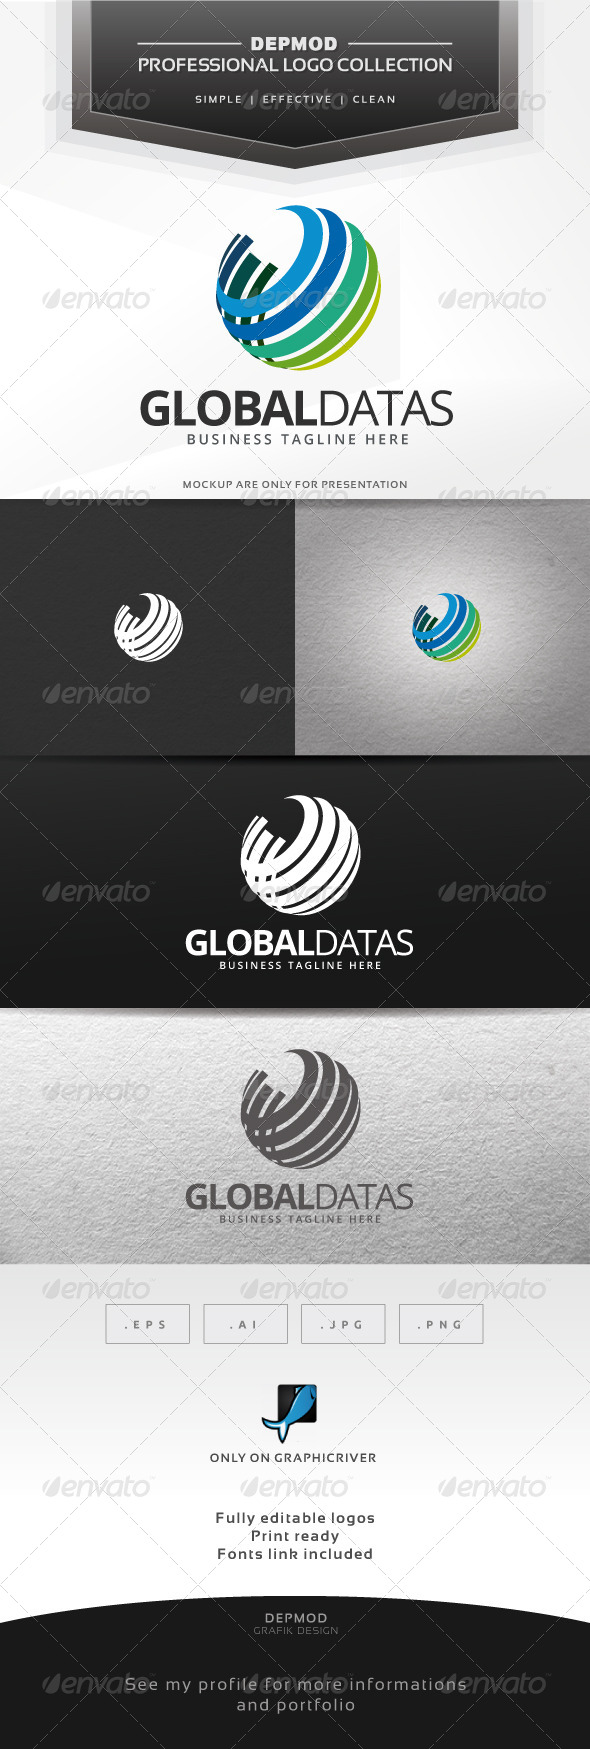 Global Datas Logo - Abstract Logo Templates